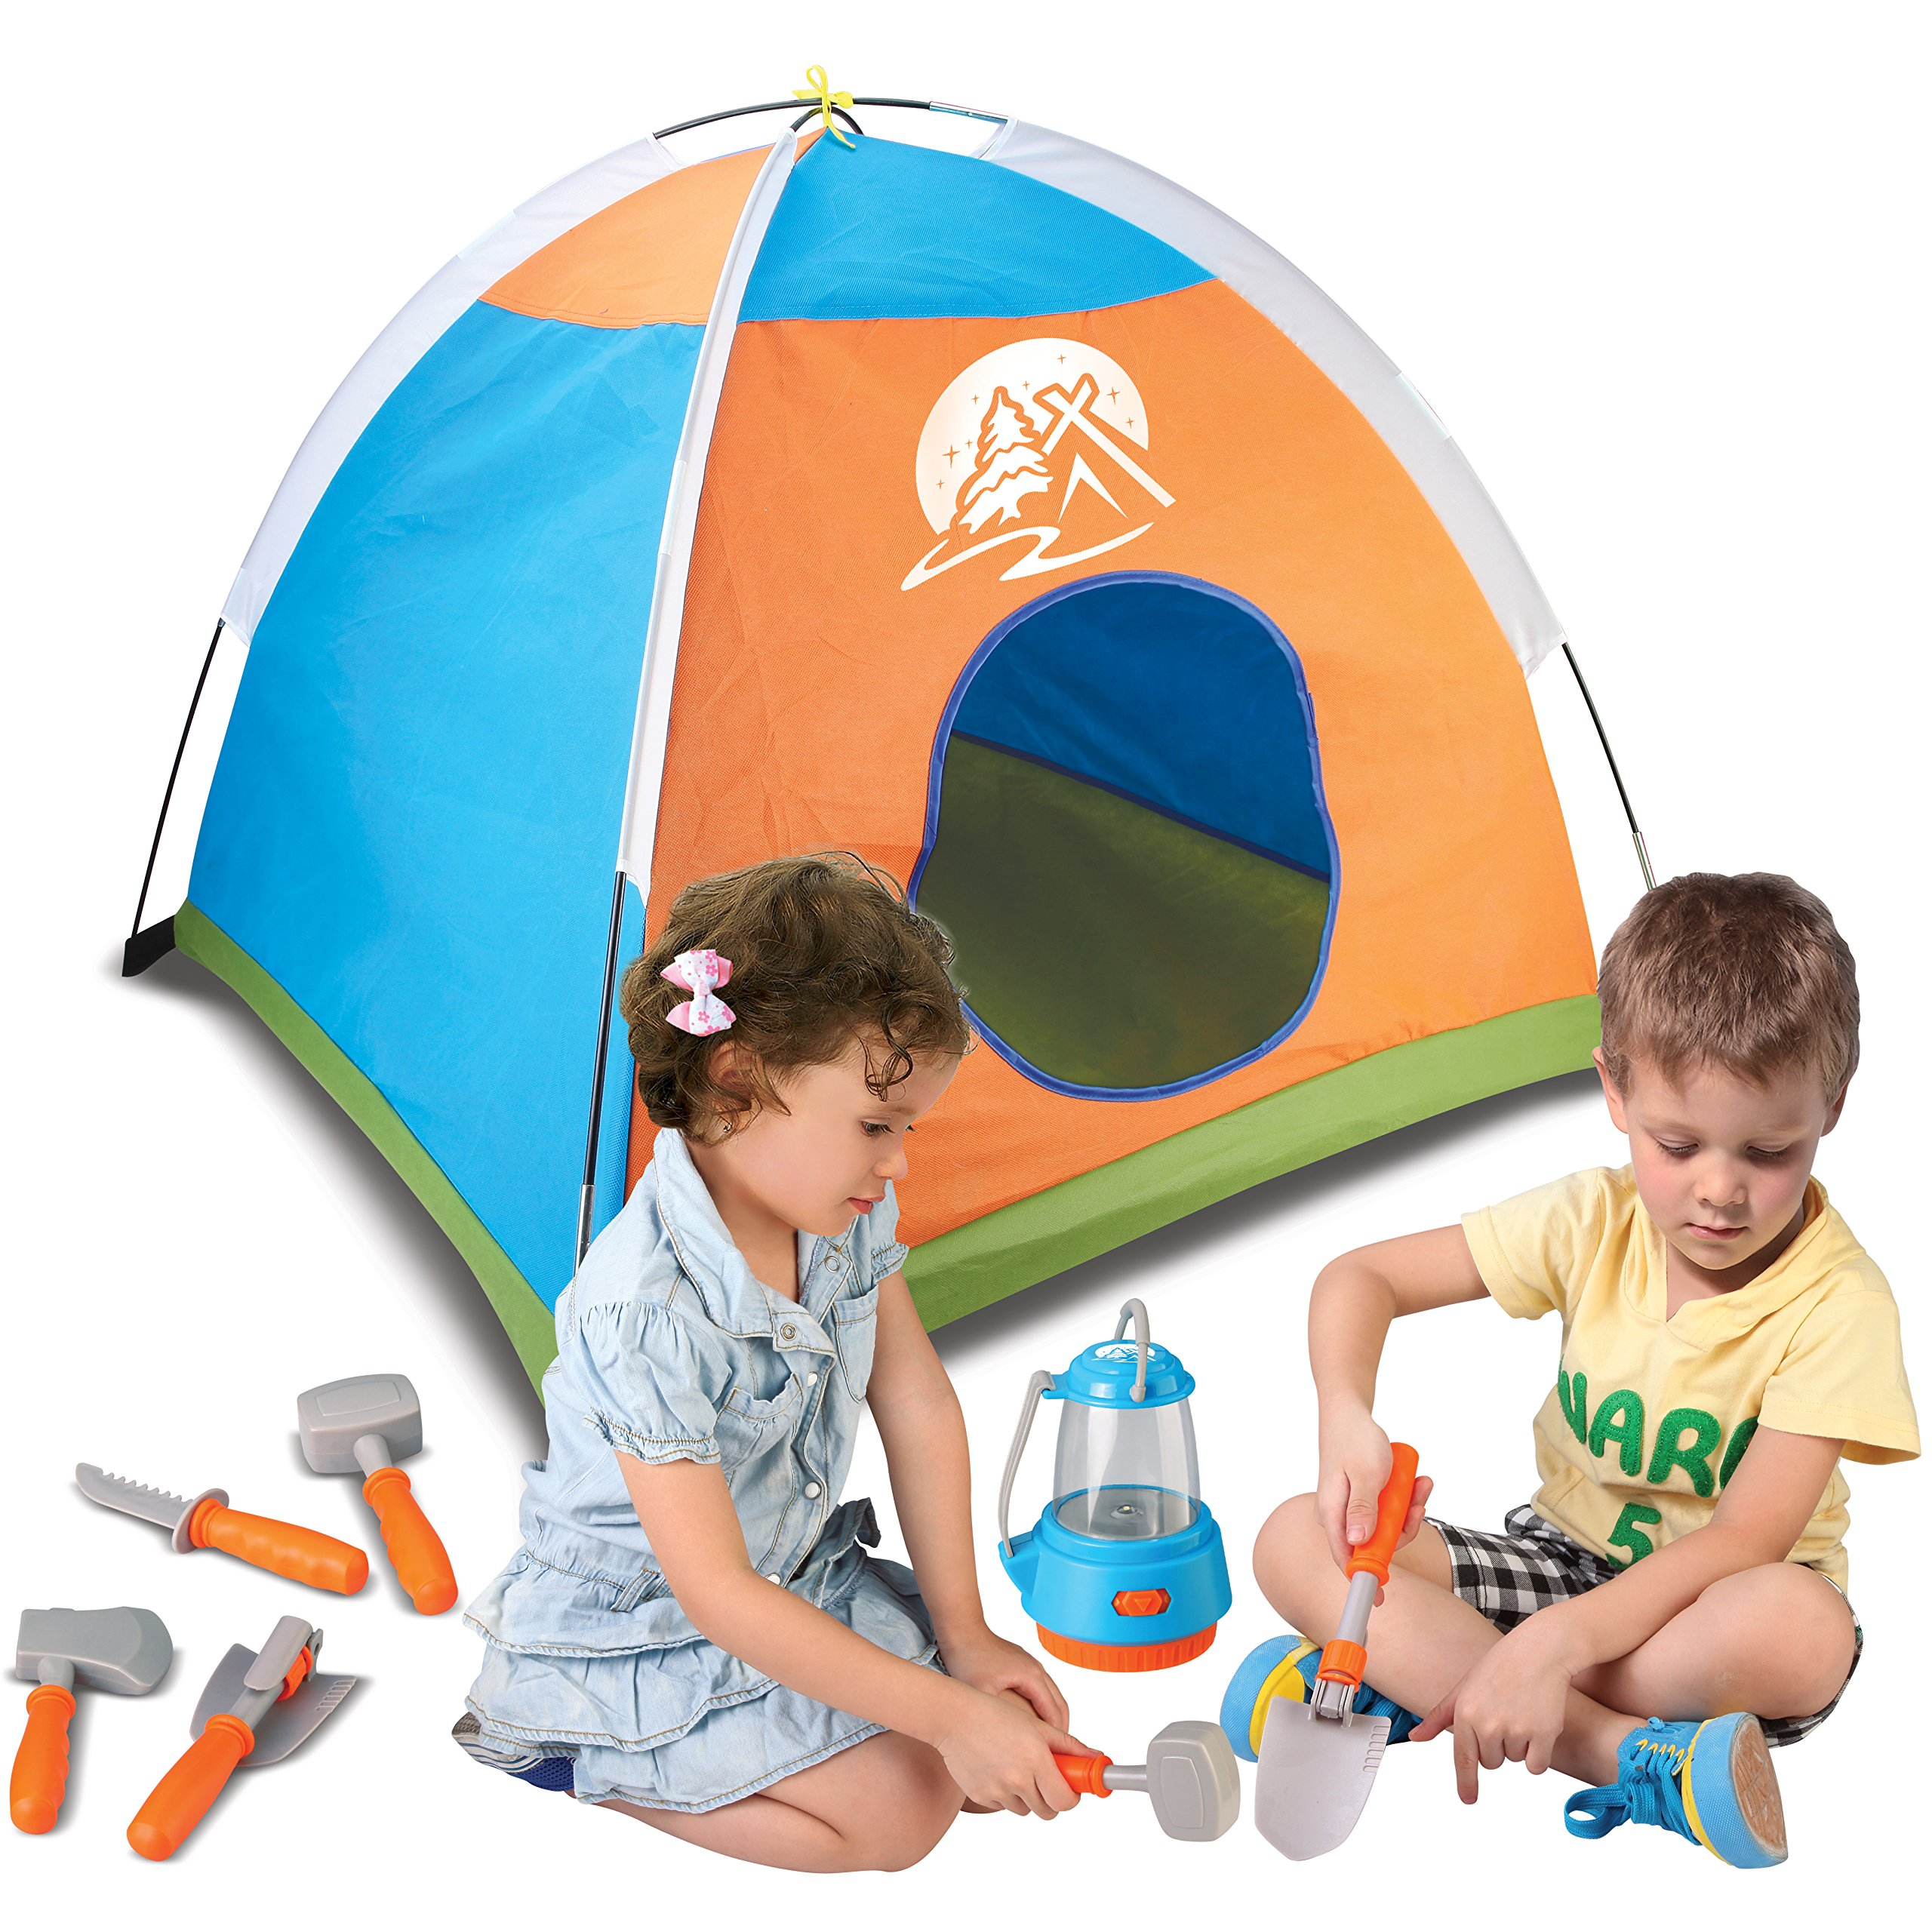 Little Explorer Camping Tent and Tools Toy Gear Play Set for Kids with Lantern